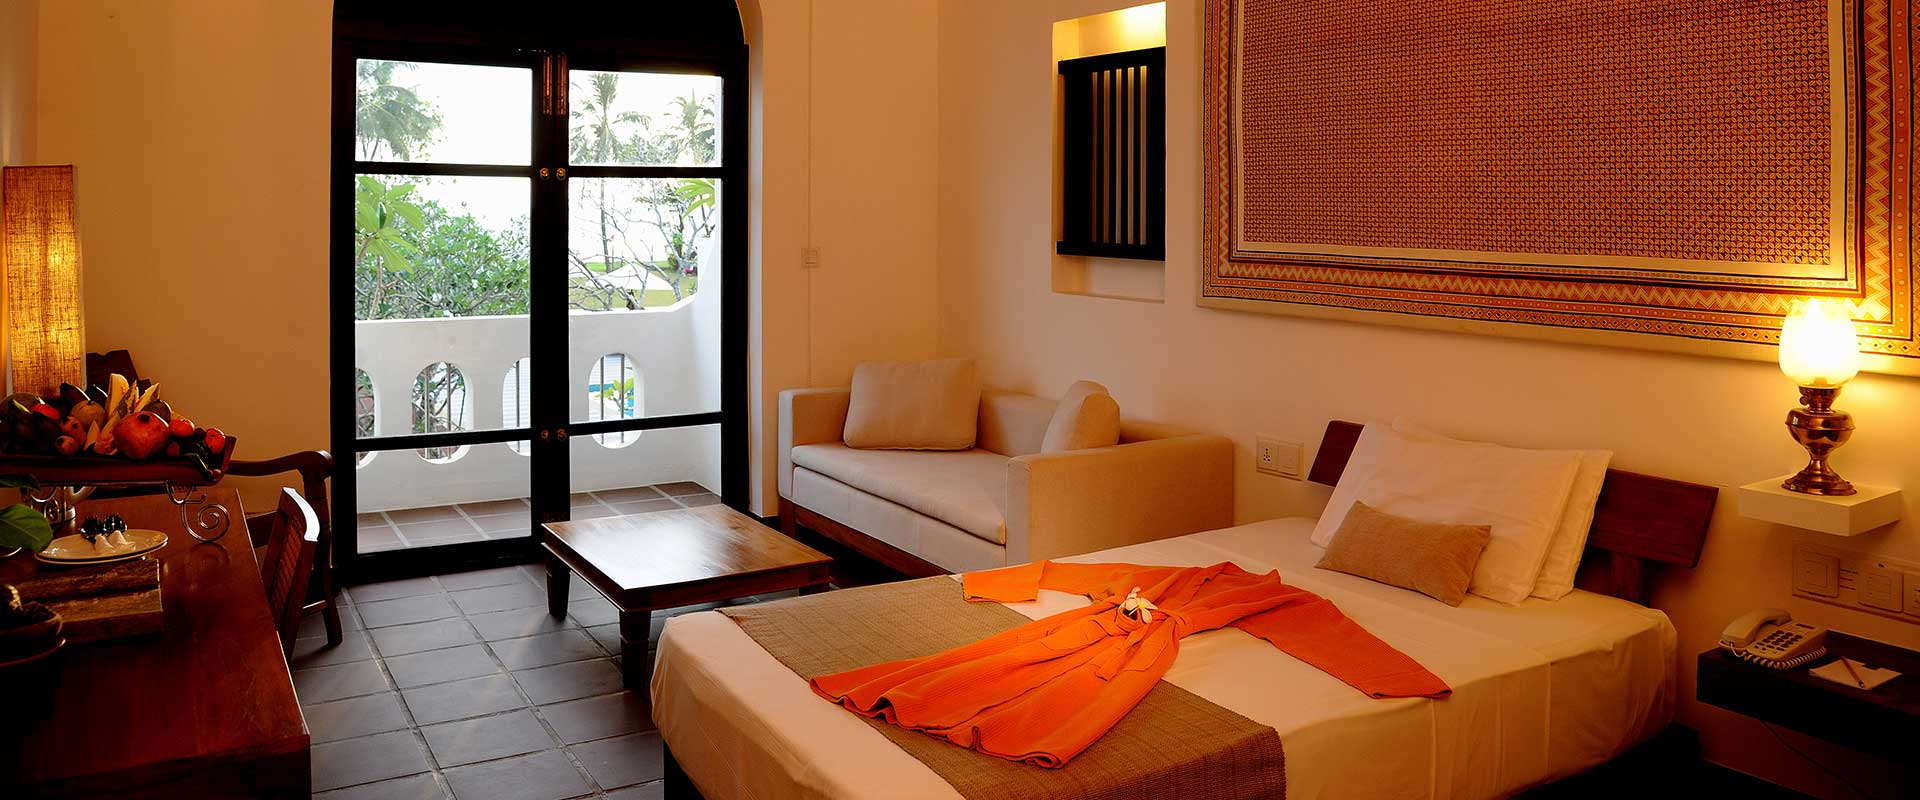 Interior of Classic Room at Heritance Ayurveda